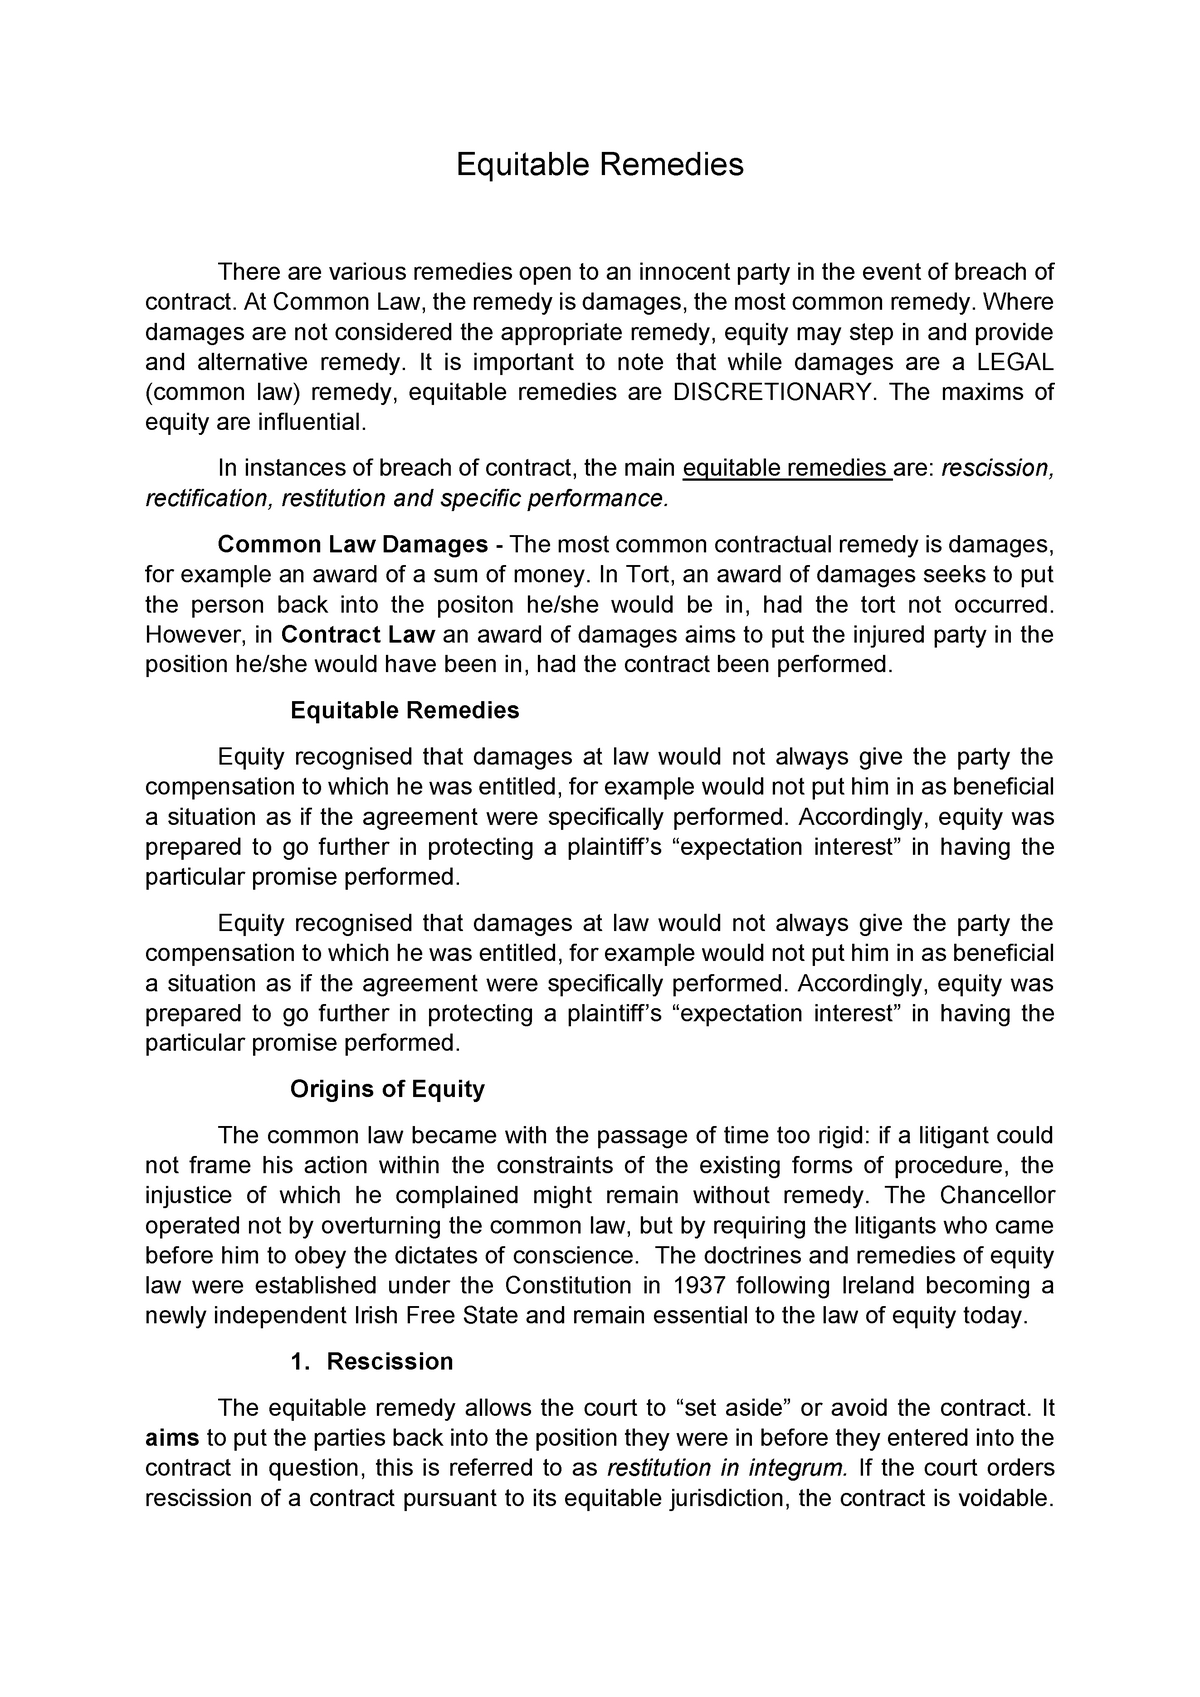 Equitable Remedies - The Law of Contract LG316 - StuDocu